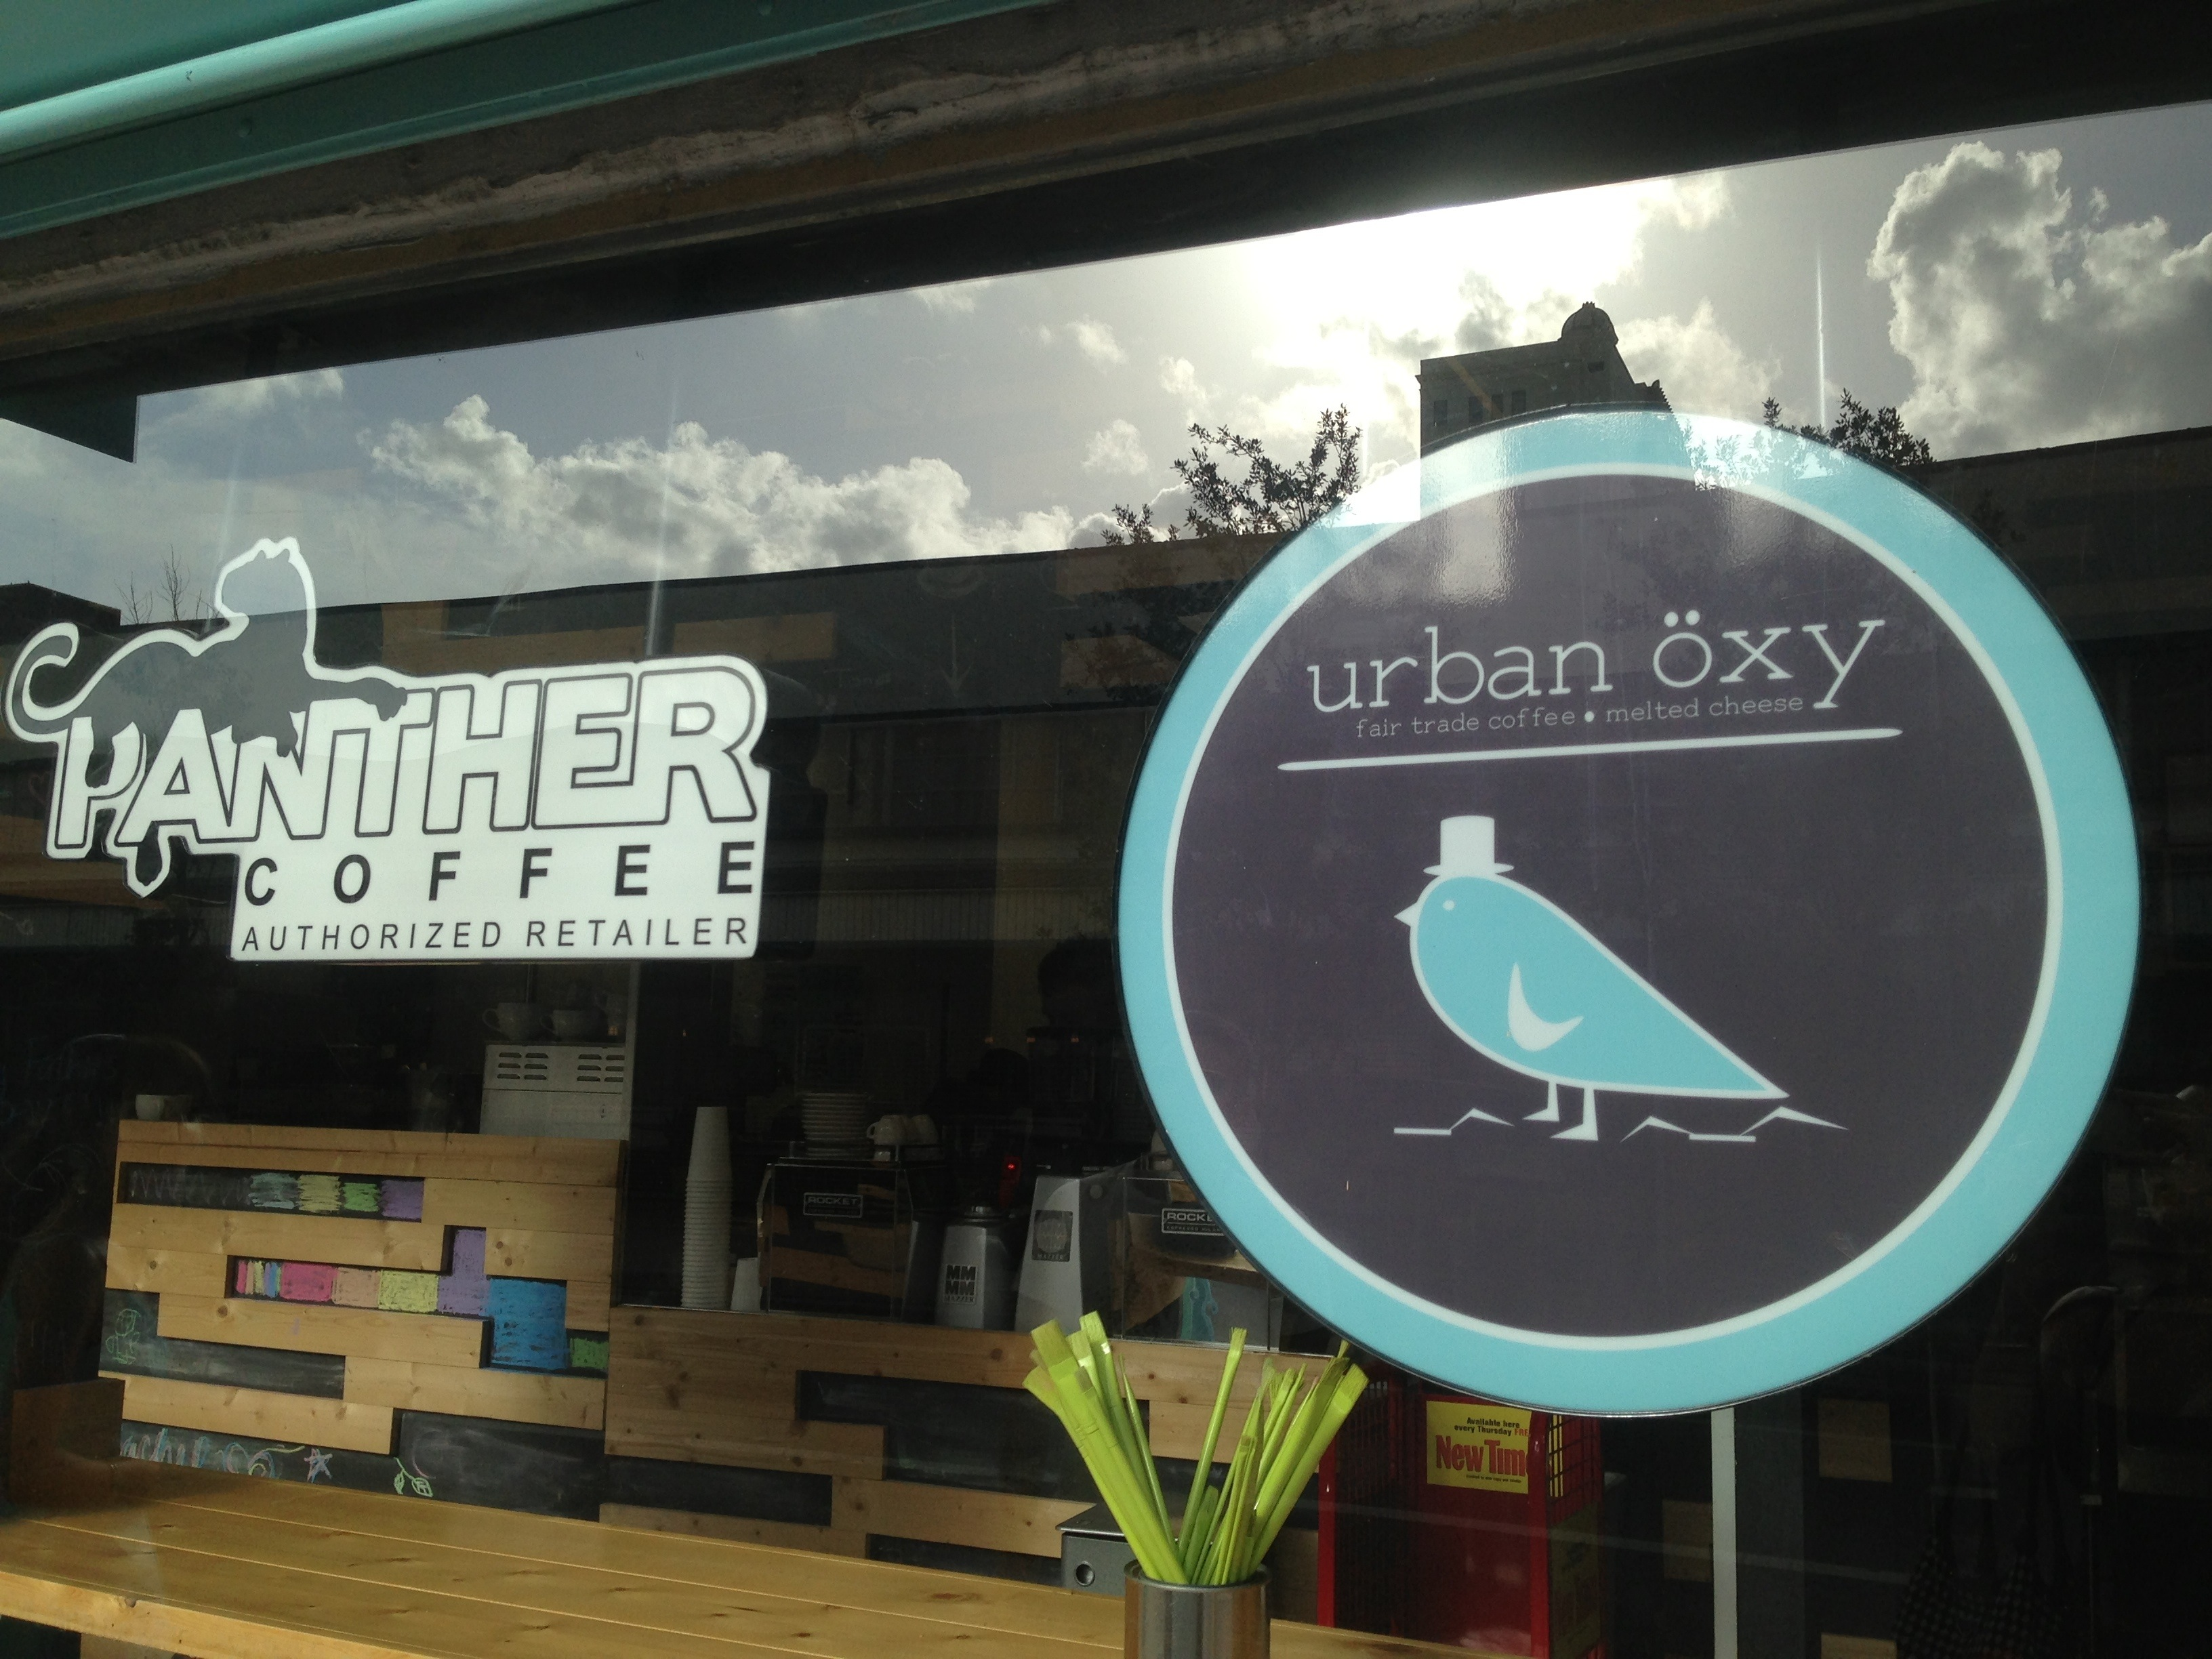 The Urban Oxy serves Panther coffee, a Miami based specialty coffee roaster